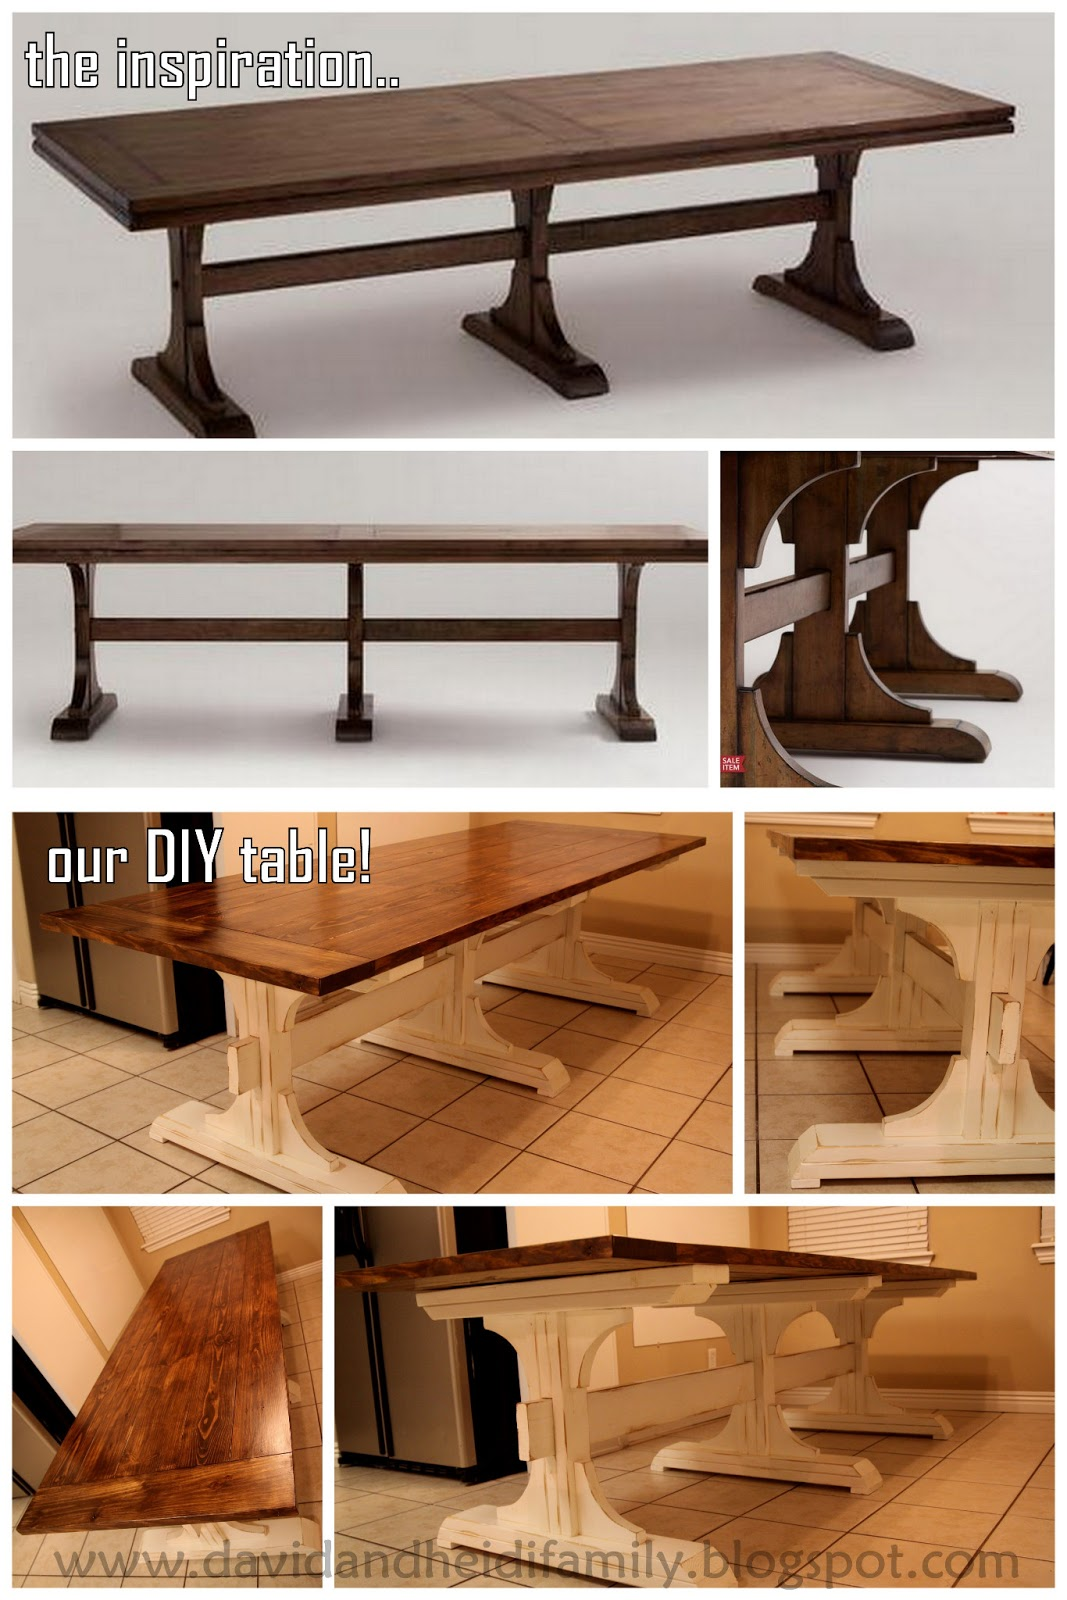 Best site for woodworking plans free pedestal desk plans Pedestal farmhouse table plans